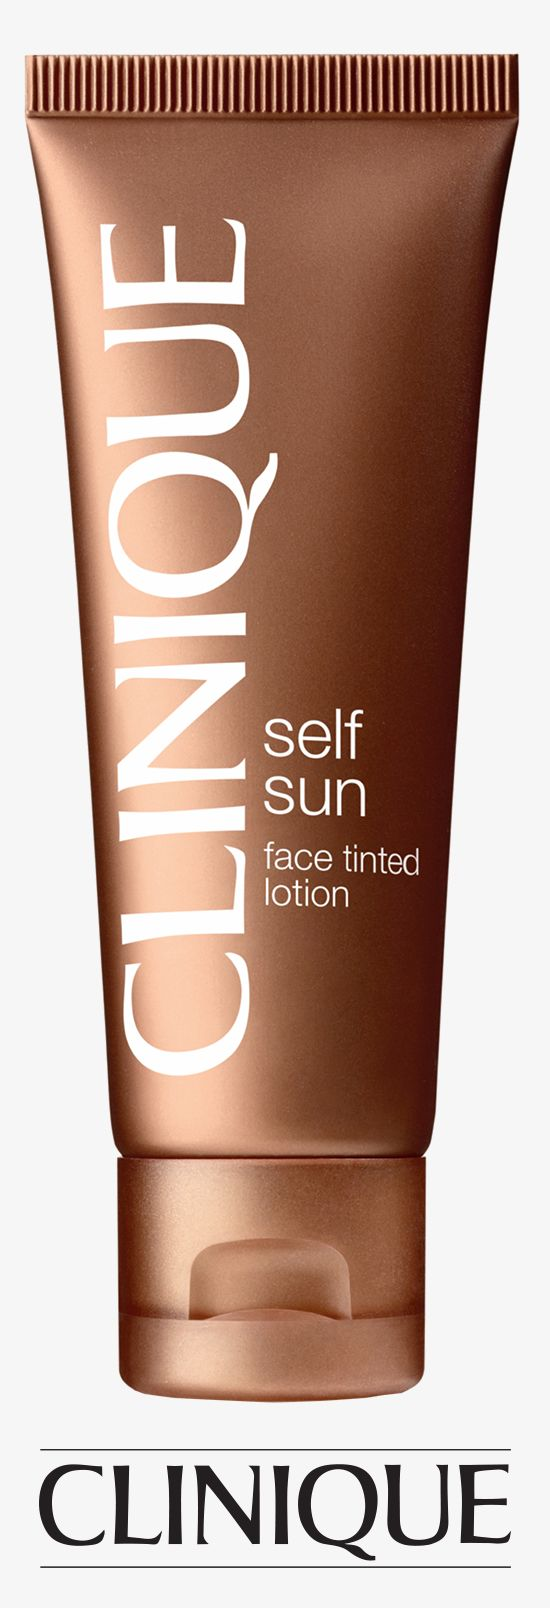 Get instant colour, and a golden 'tan' that develops over time. Looks smooth, even, natural.    #Clinique Self Sun Face Tinted Lotion